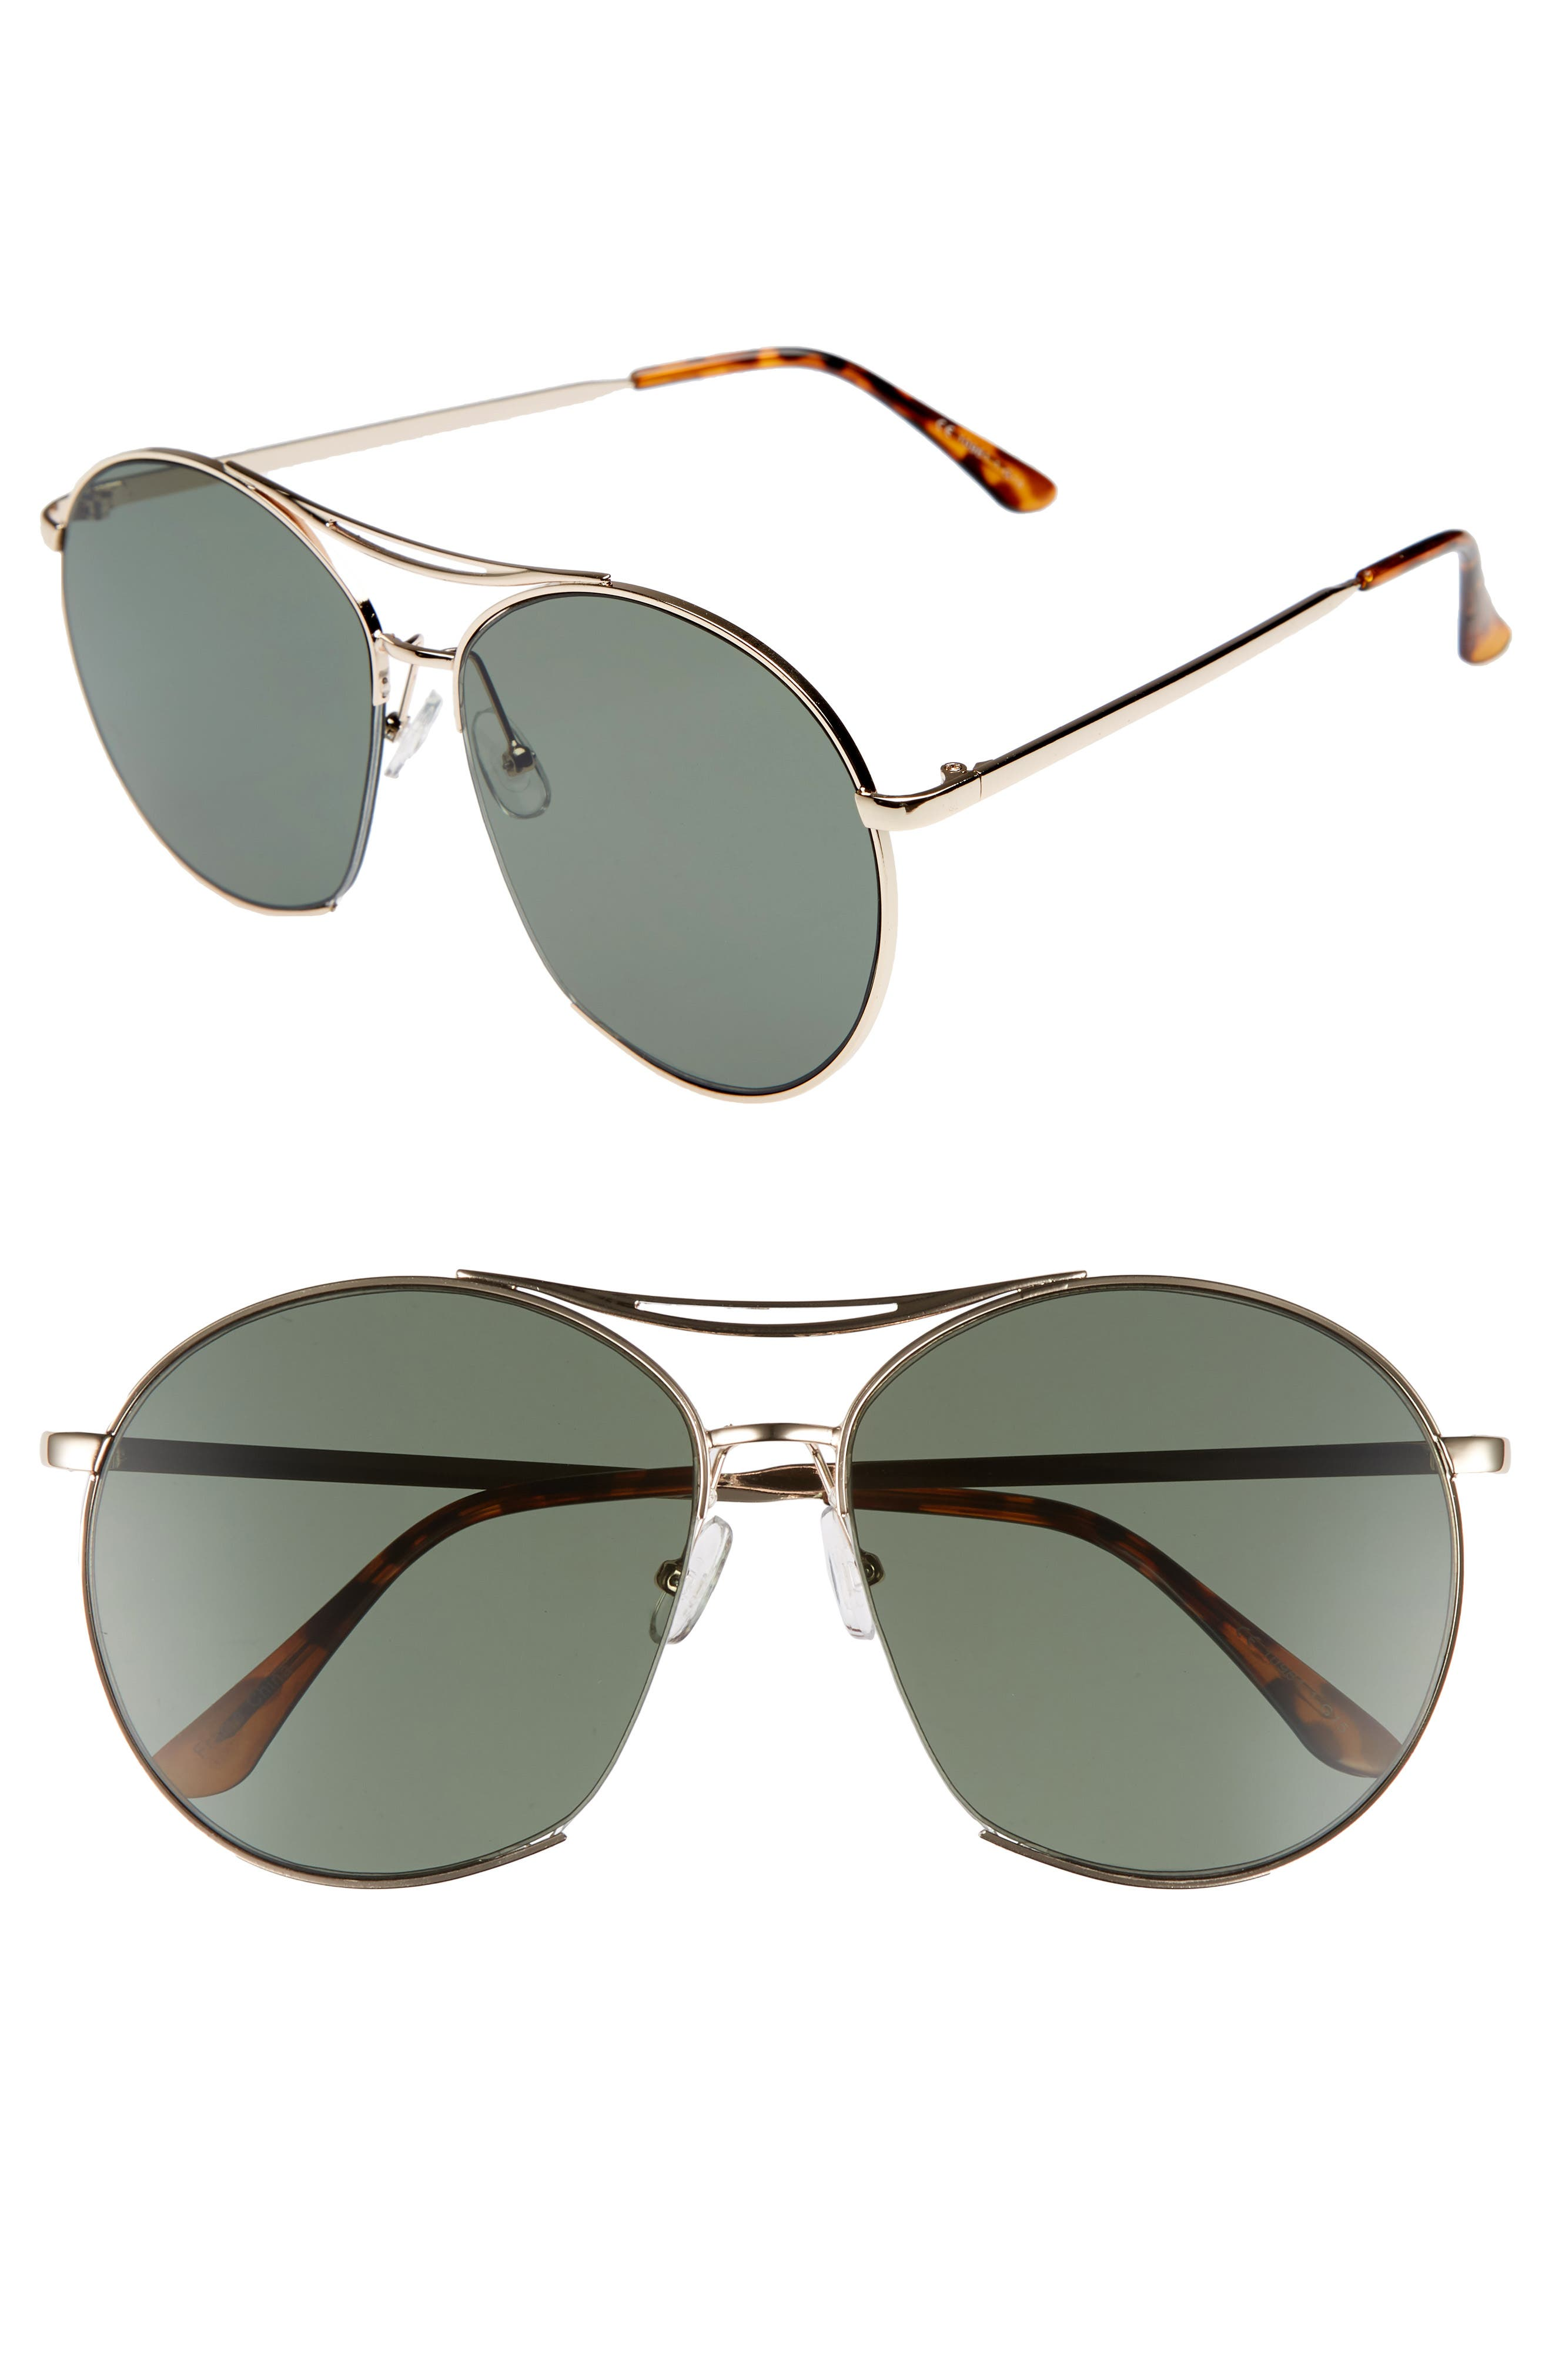 60mm Round Aviator Sunglasses,                             Main thumbnail 1, color,                             Gold